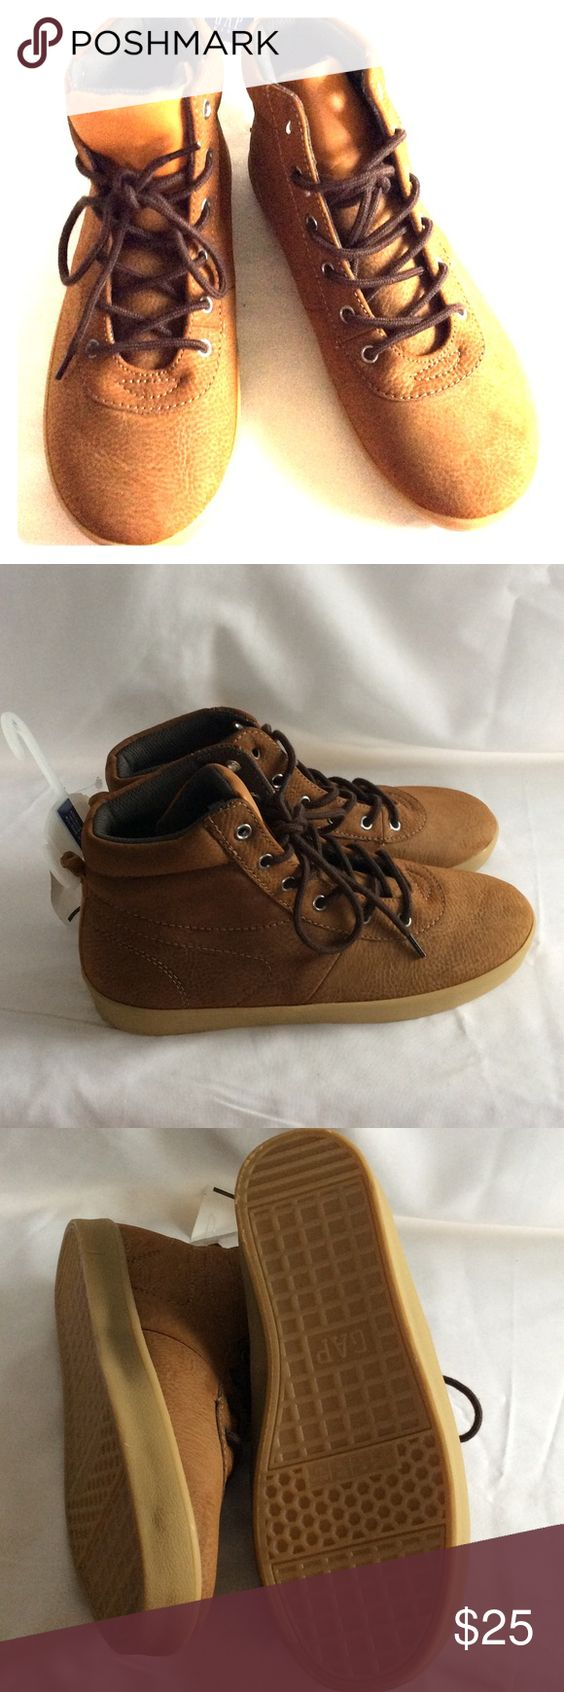 BNWT, Gap boots BNWT, suede hiker saddle, well made unisex boots, lined, great for school.  Beautiful camel color. GAP Shoes Boots